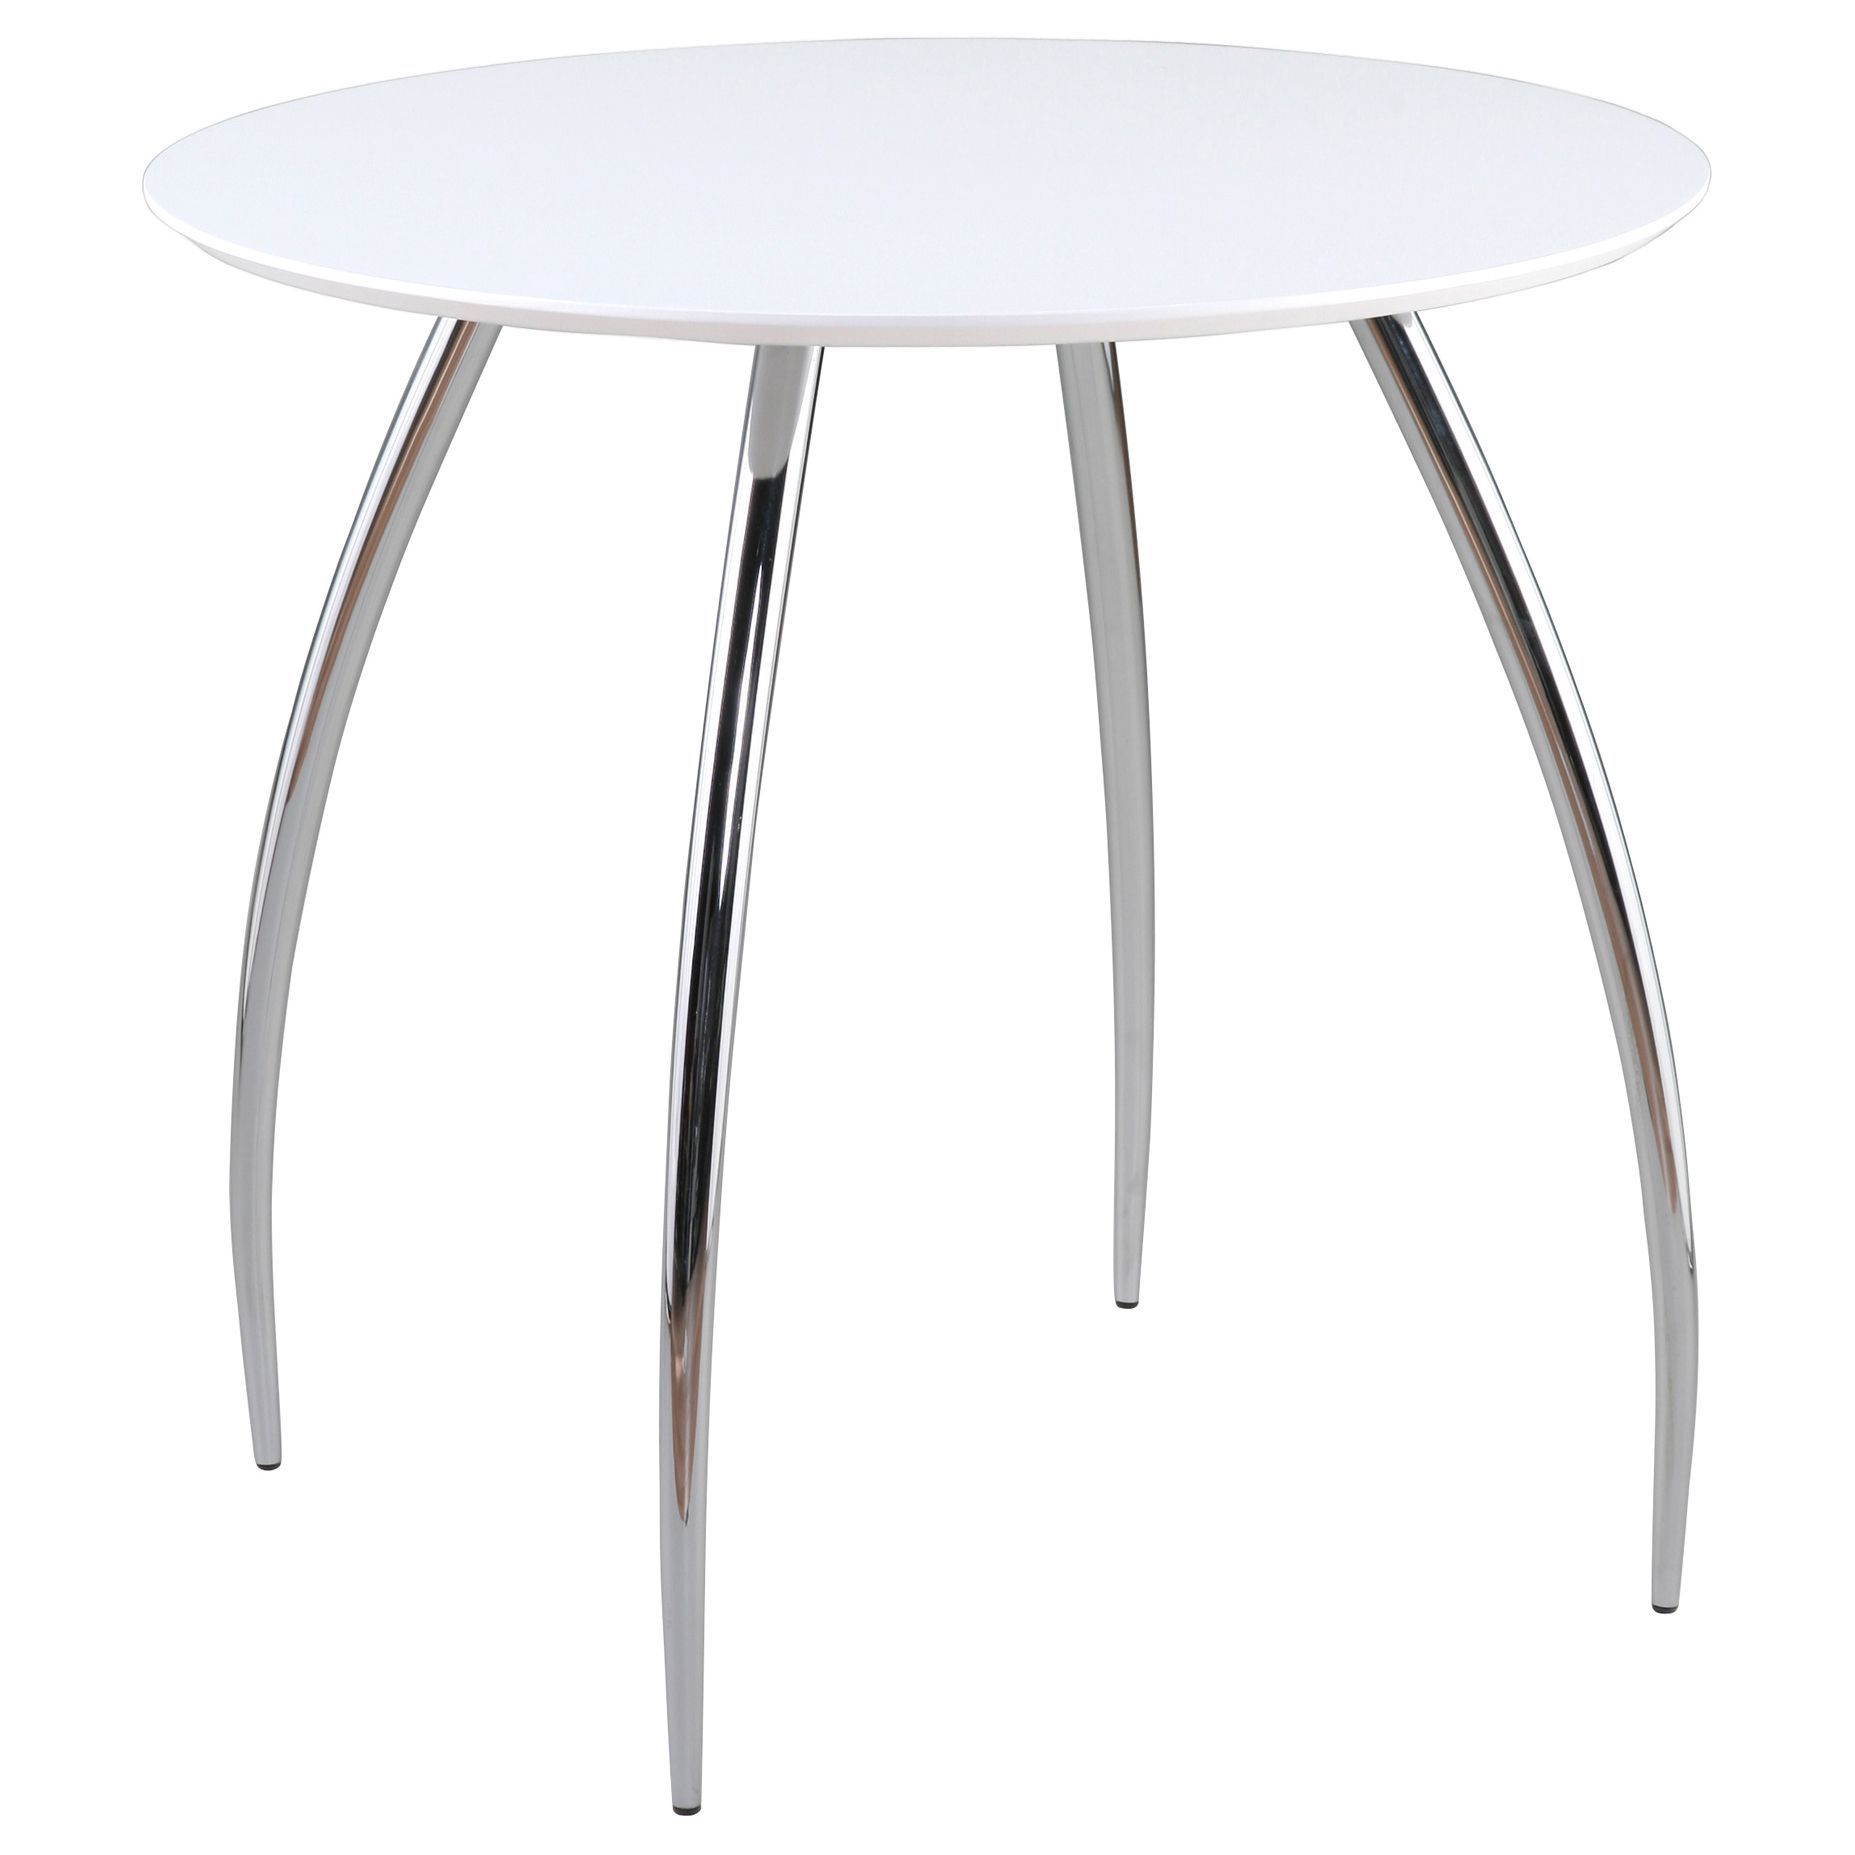 This Euro Style White Bistro Table Is Perfect For Entertaining Purposes. The  Round Table